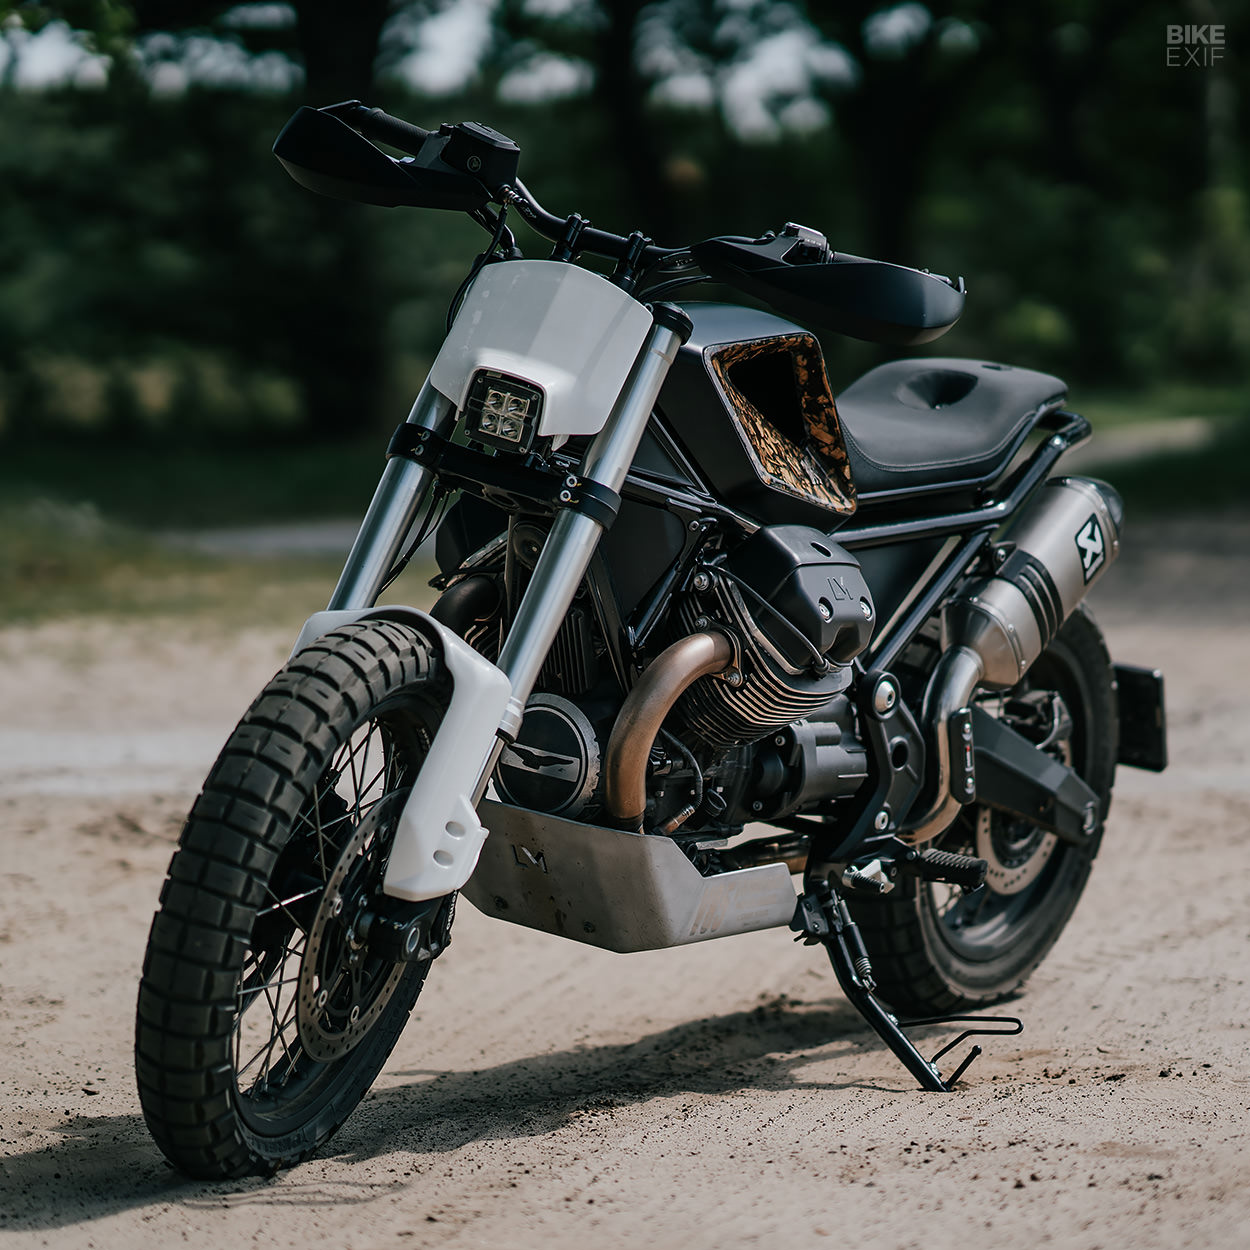 Custom Moto Guzzi V85 TT by Luuc Muis for Vanguard Clothing